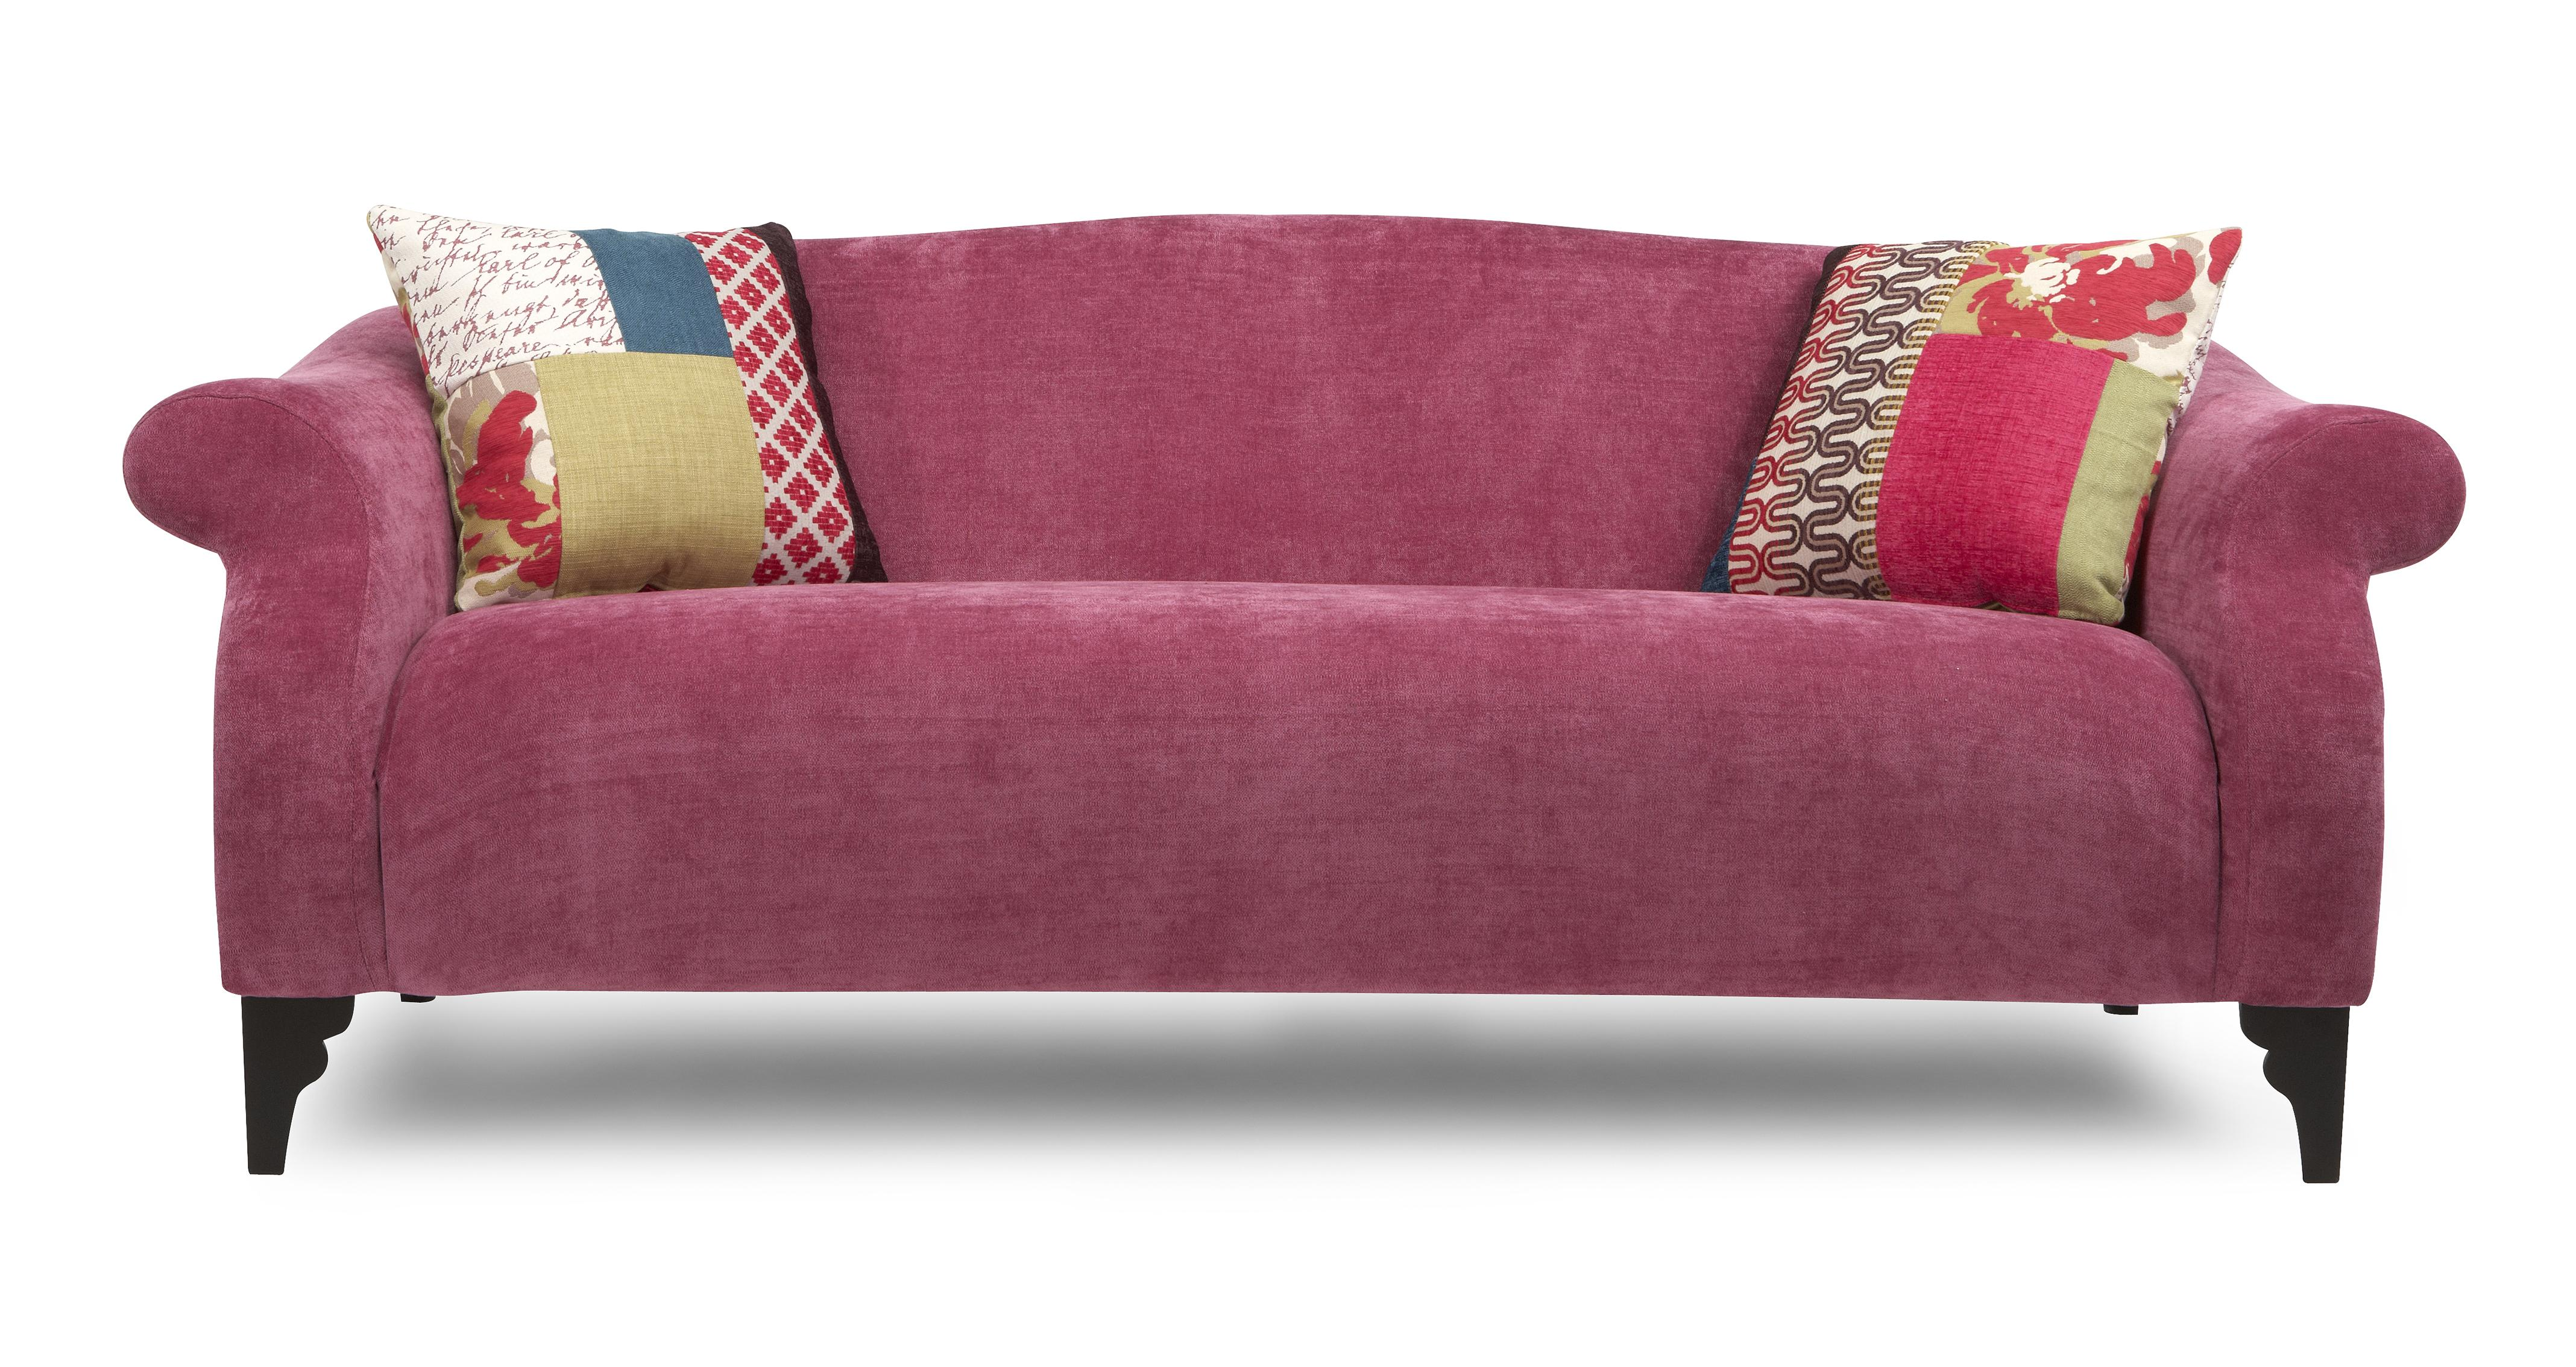 pink sofa browse uk sears canada cleaning dfs brokeasshome